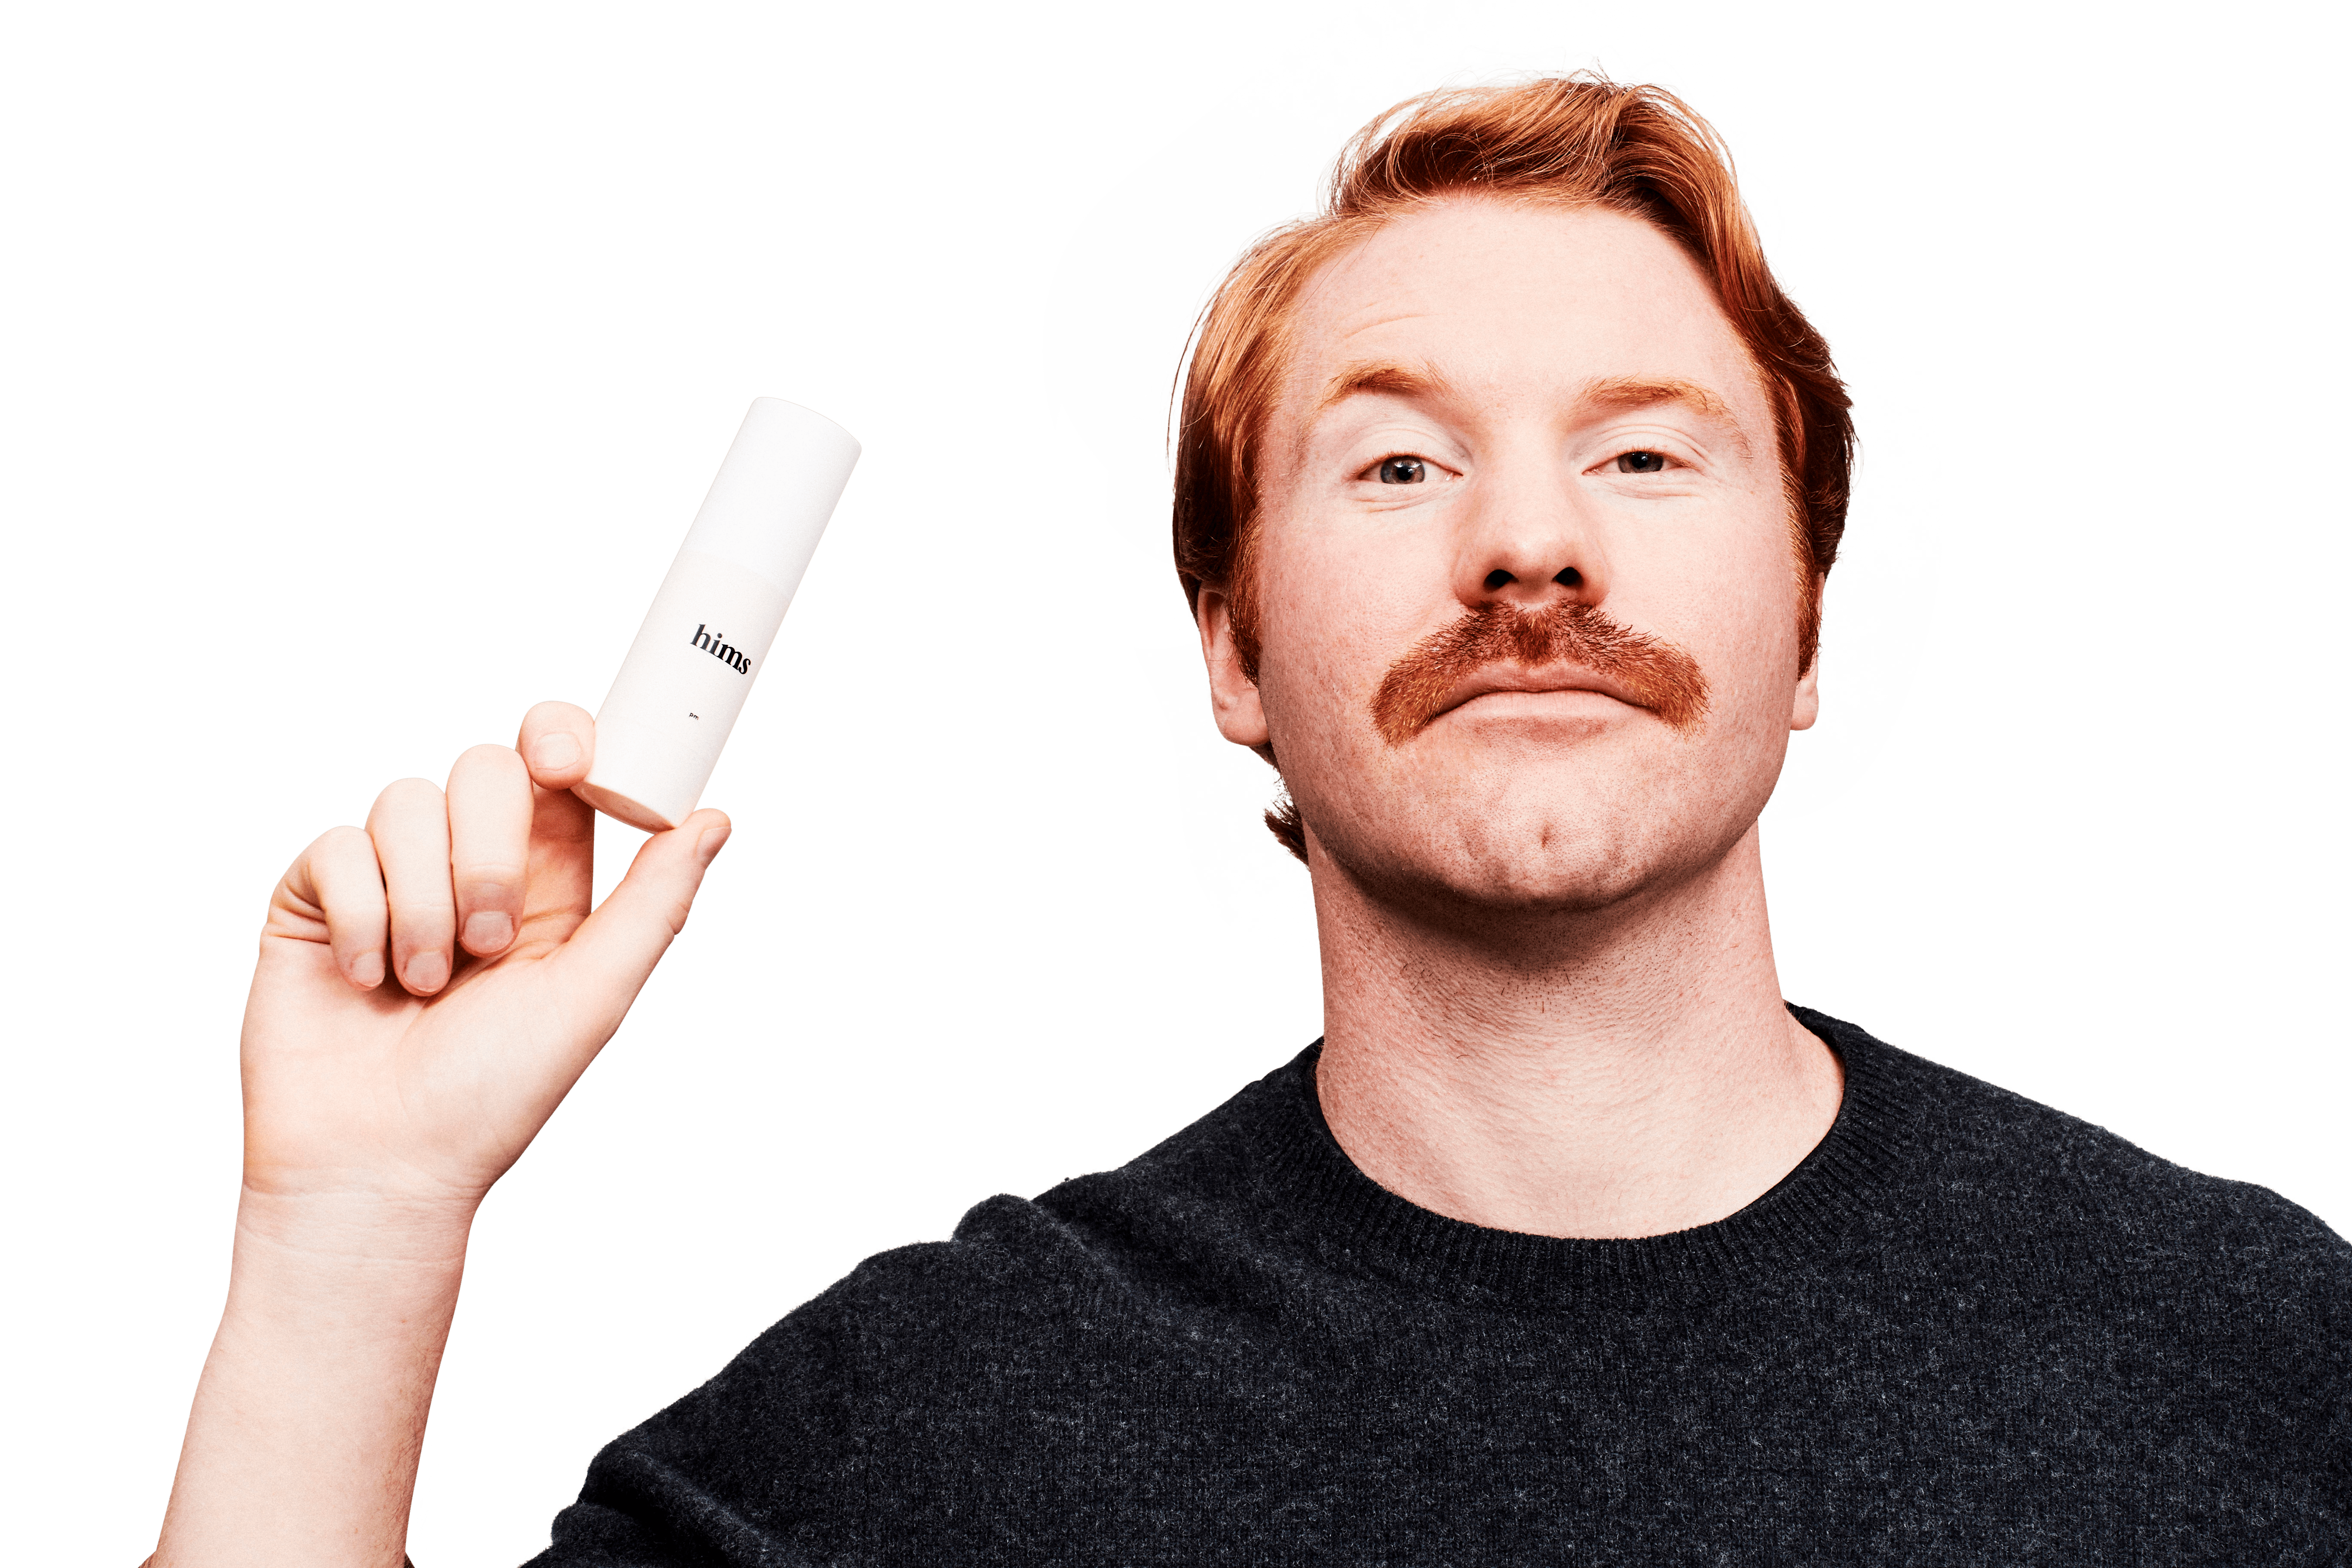 A moustached man holding up a bottle of anti-aging cream